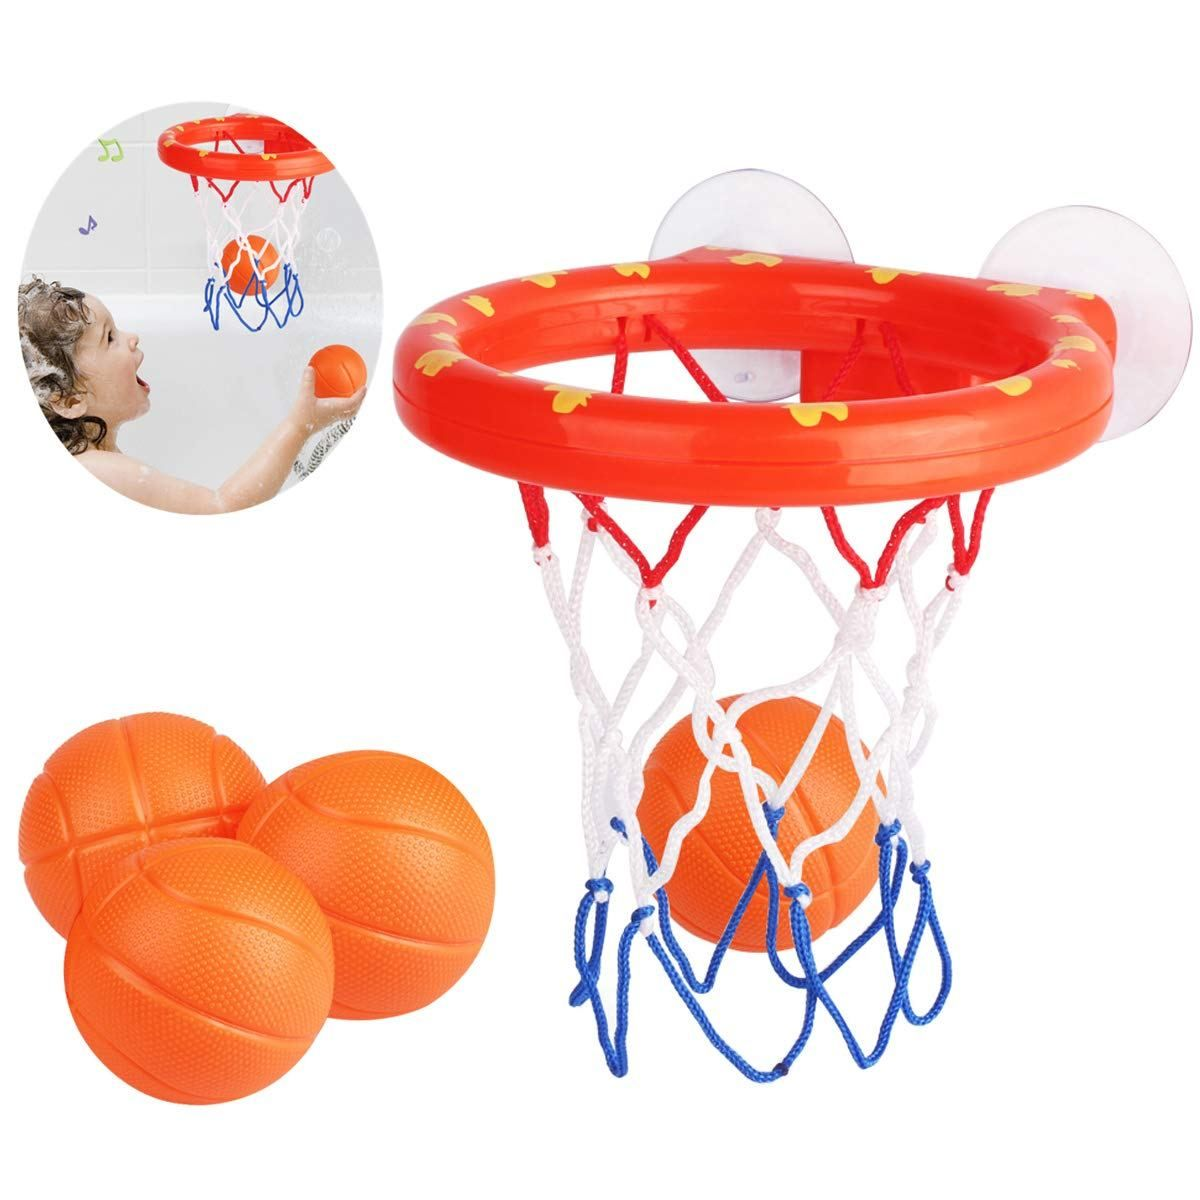 Amandir Bath Toys Basketball Hoop Balls Playset 4 Balls Included For Boys And Girls Baby Basketball Toy Bathtub Shooting Game For Kids Toddlers Bath Toys Bathtub Toys Shooting